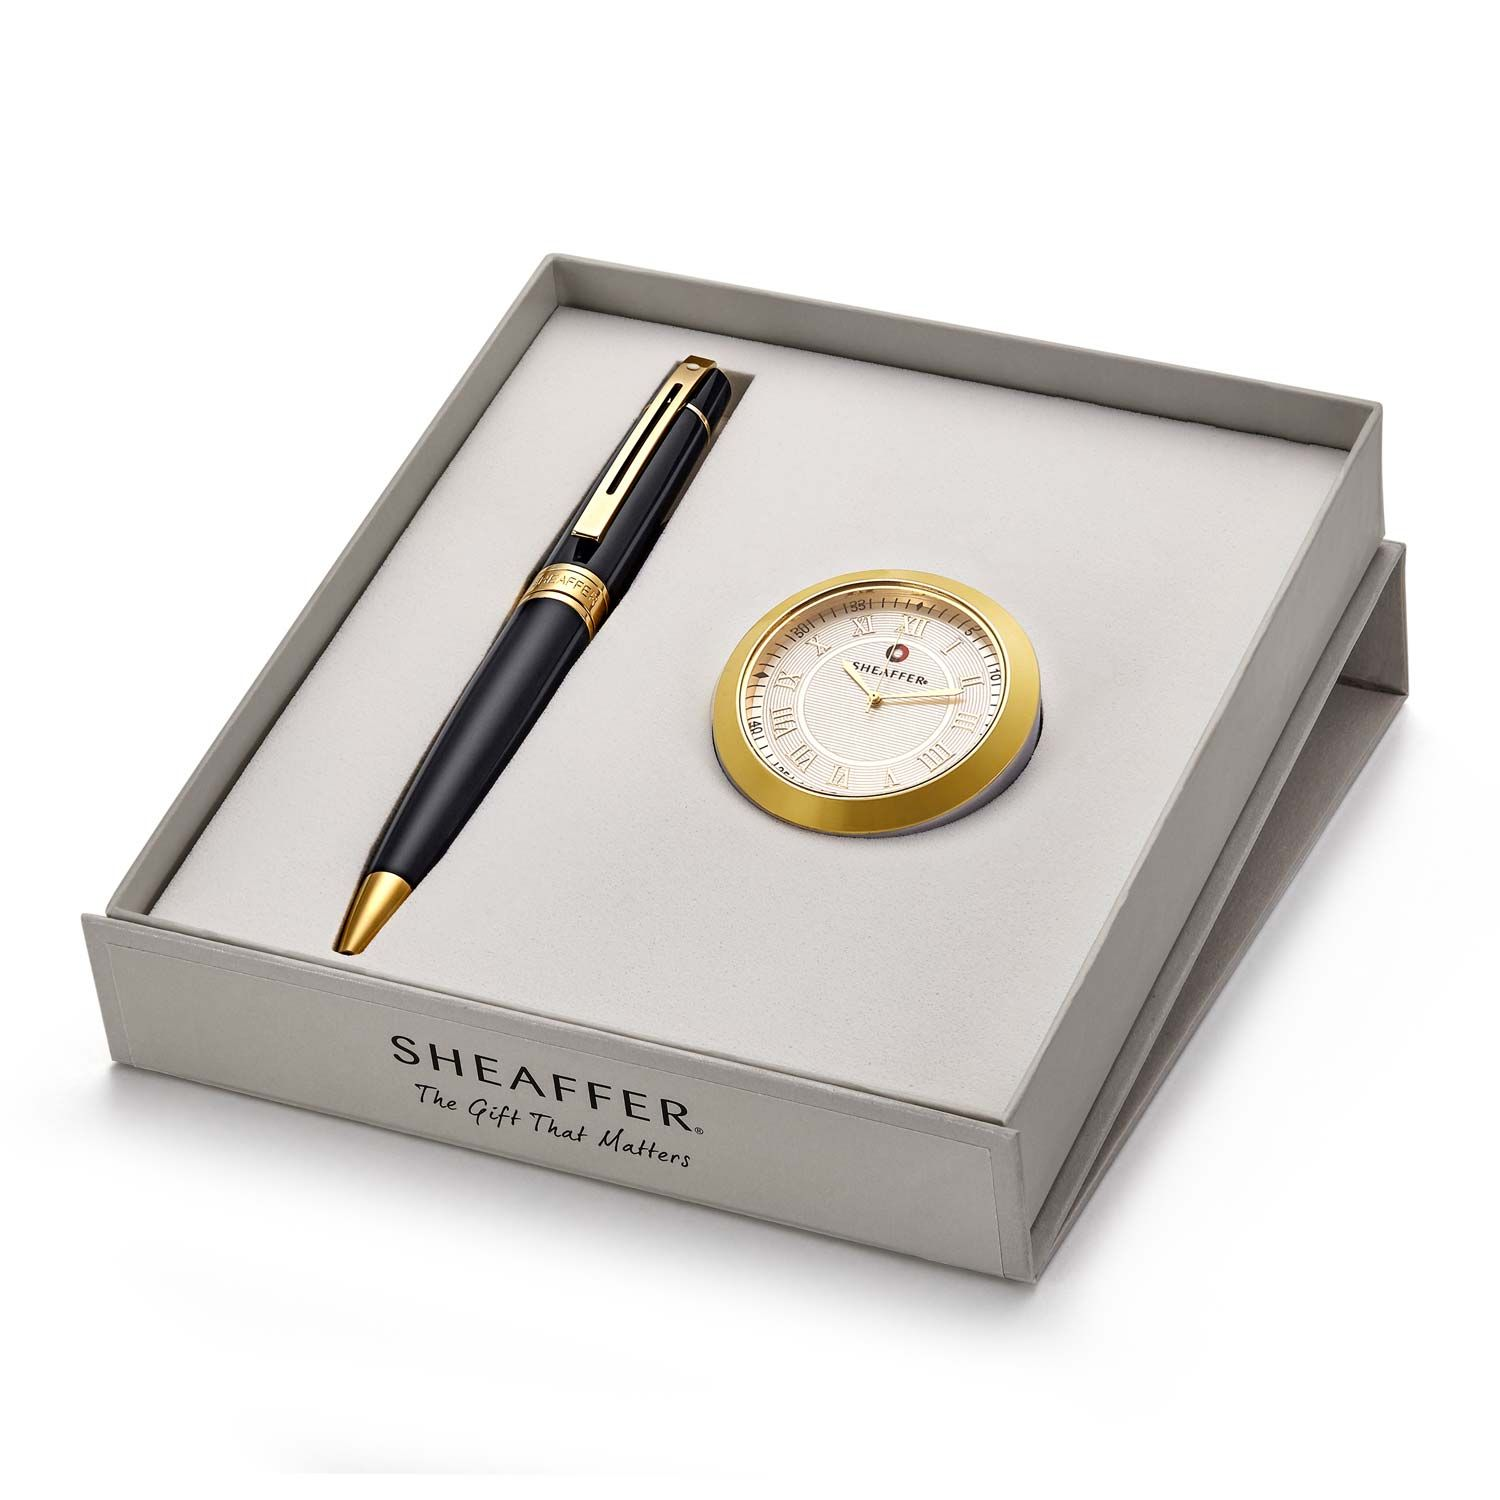 Sheaffer 9325 Ballpoint Pen With Gold Chrome Table Clock Rs. 2400